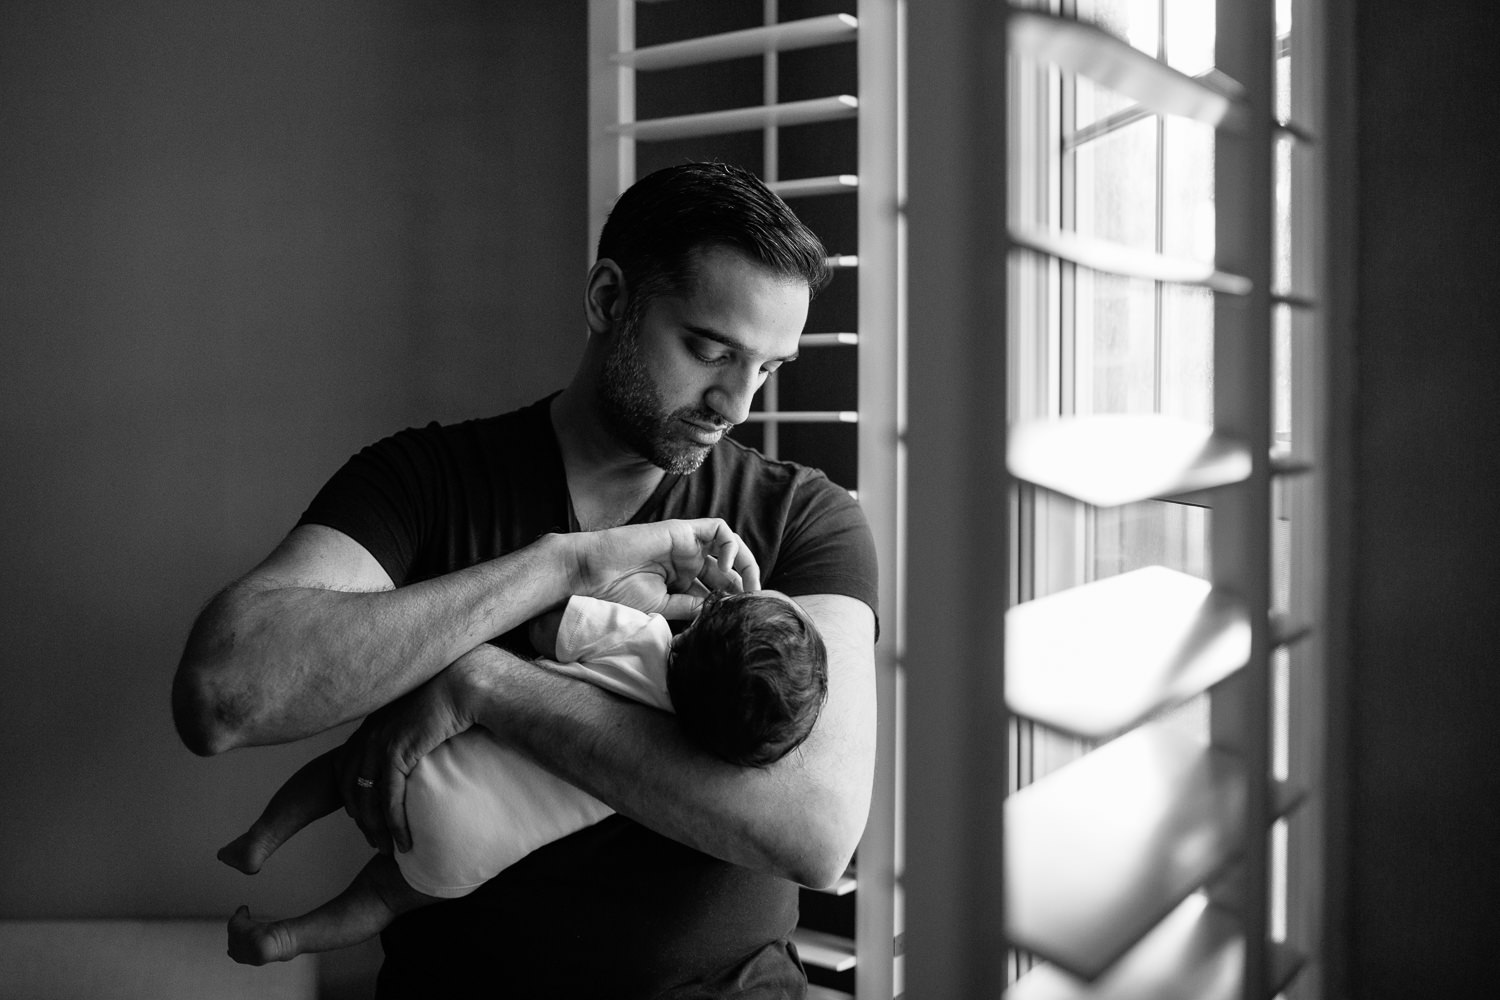 new father standing in front of window holding 1 month old baby boy in onesie in his arms, putting soother in son's mouth - York Region In-Home Photography